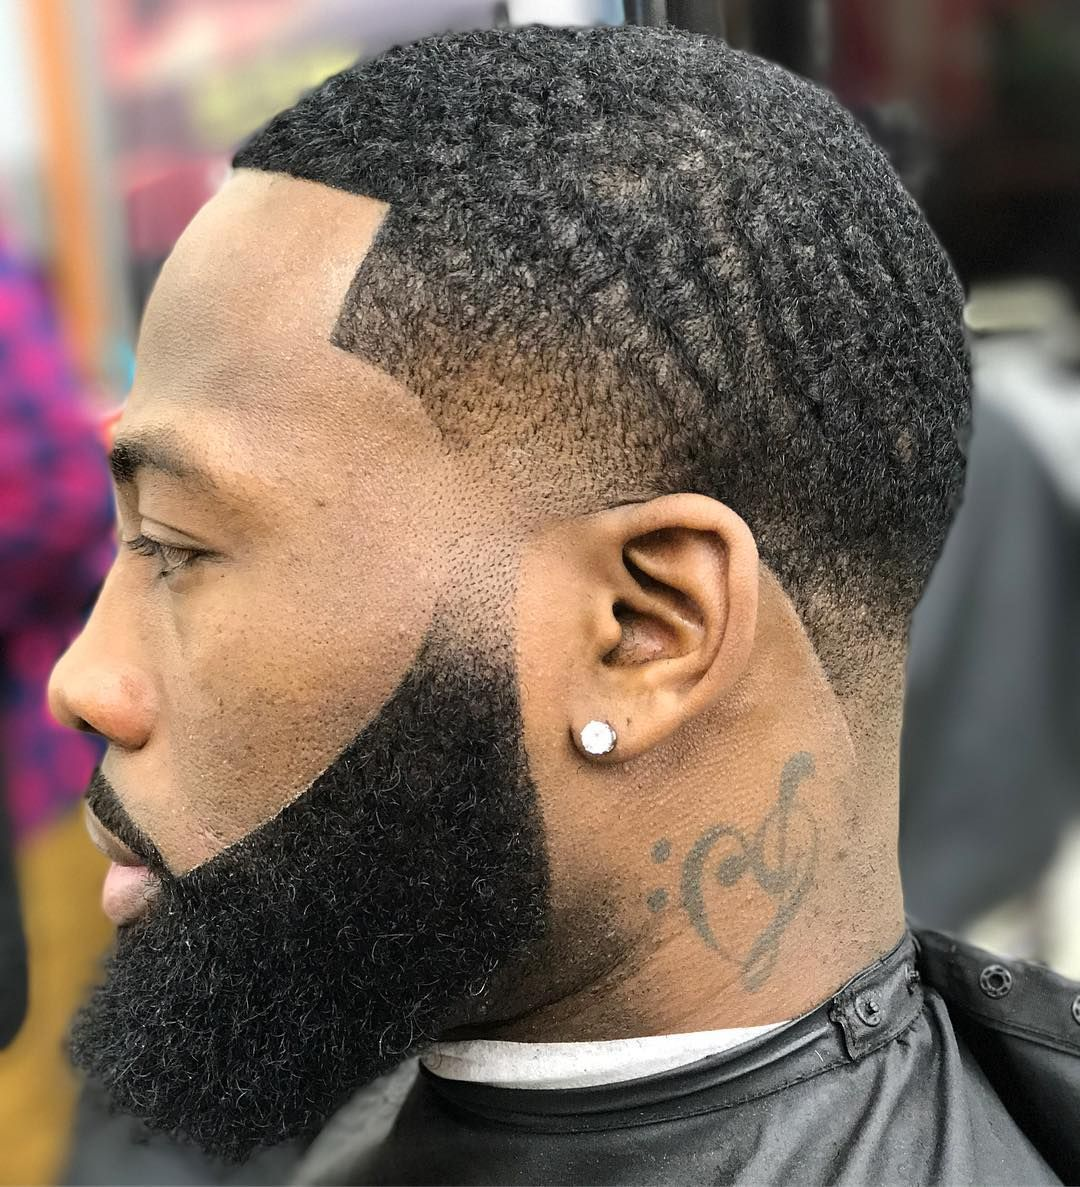 Rebellion Beard Style For Black Men Black Men Beard Styles